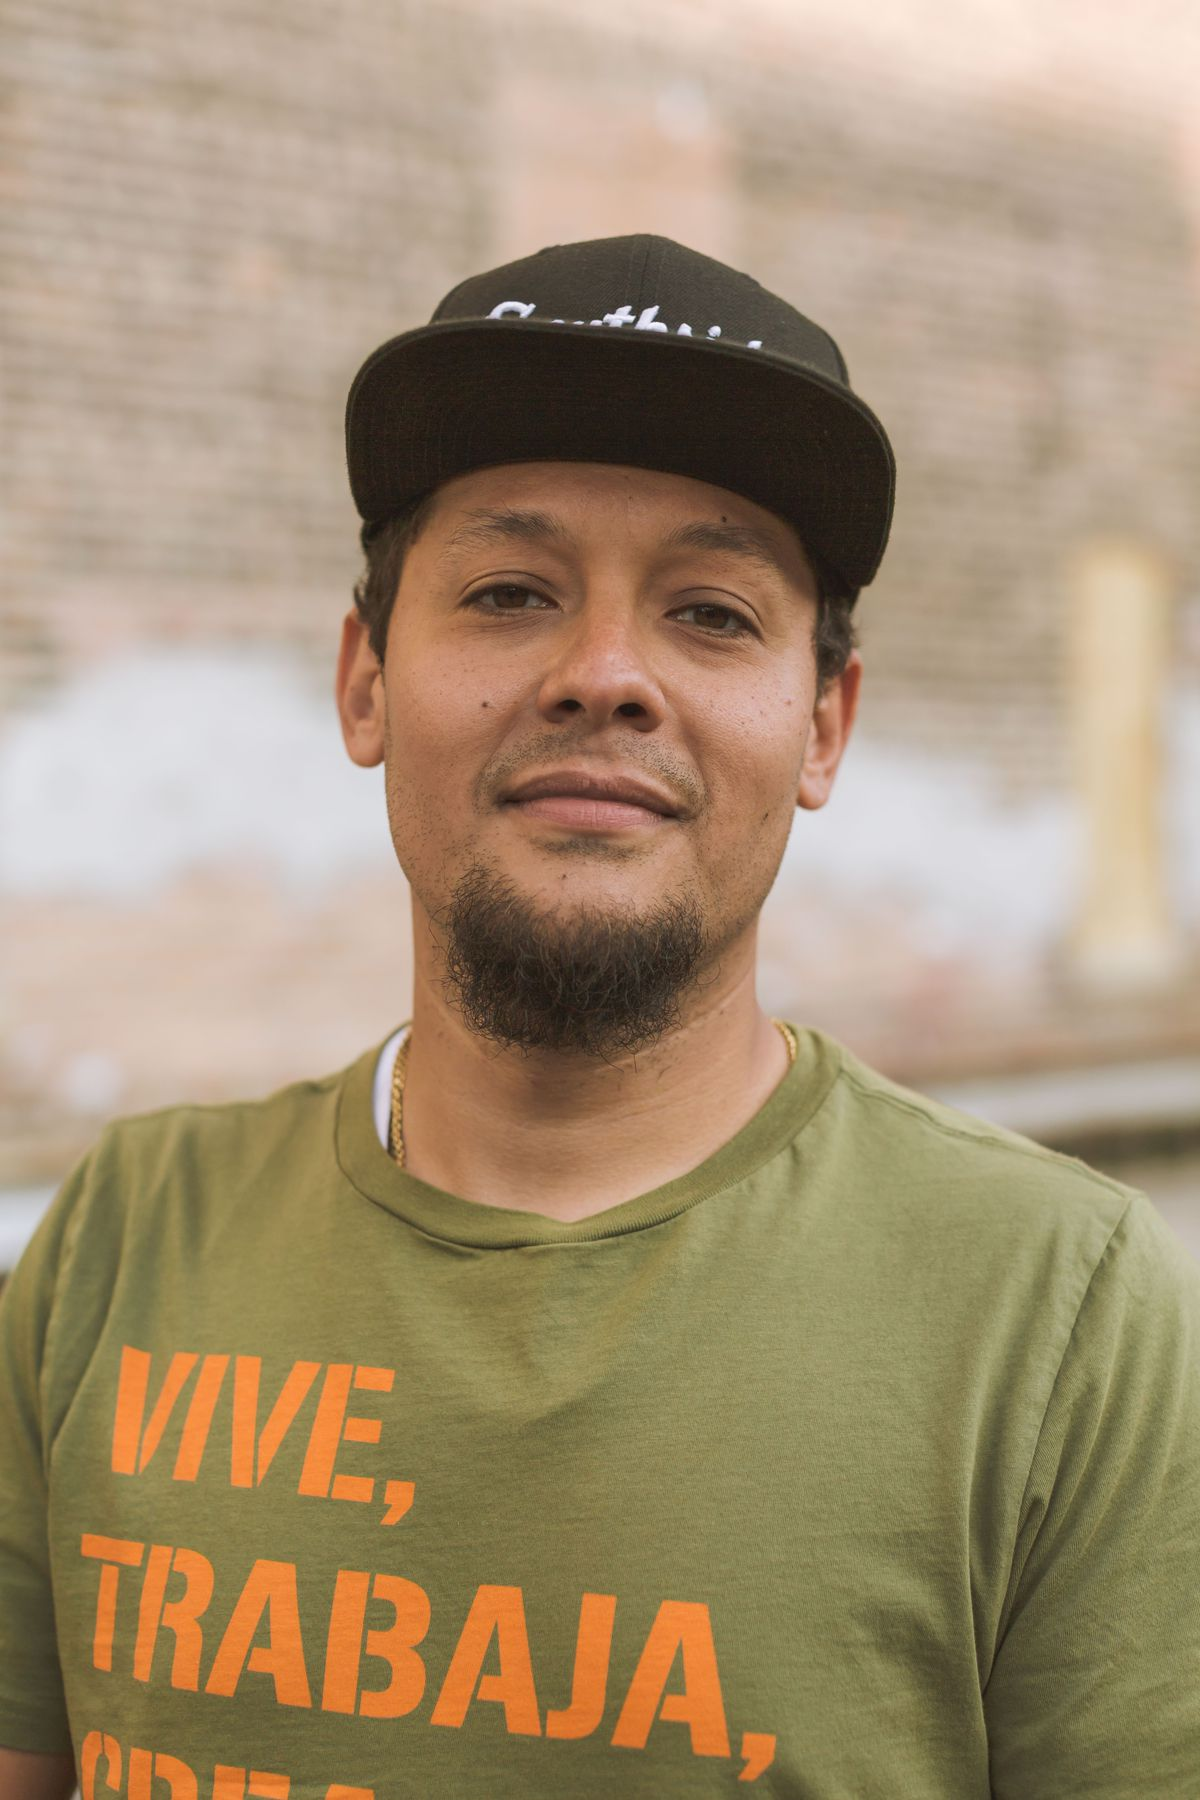 Mateo Zapata, one of the mural's artists, has experienced the effects of gentrification through his rising rent.